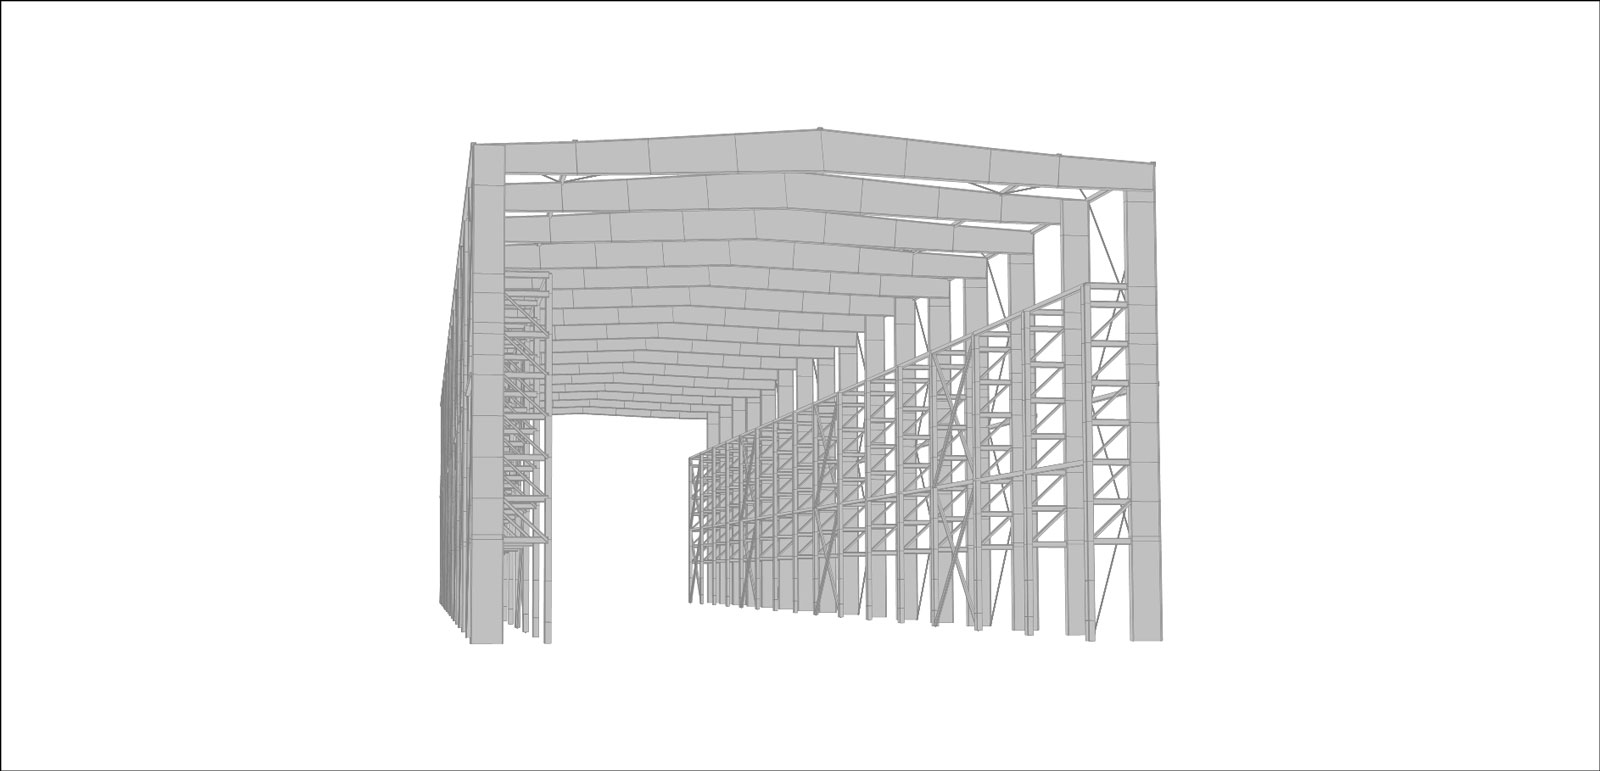 Pipe Storage Building for Hampton Building Systems Inc.